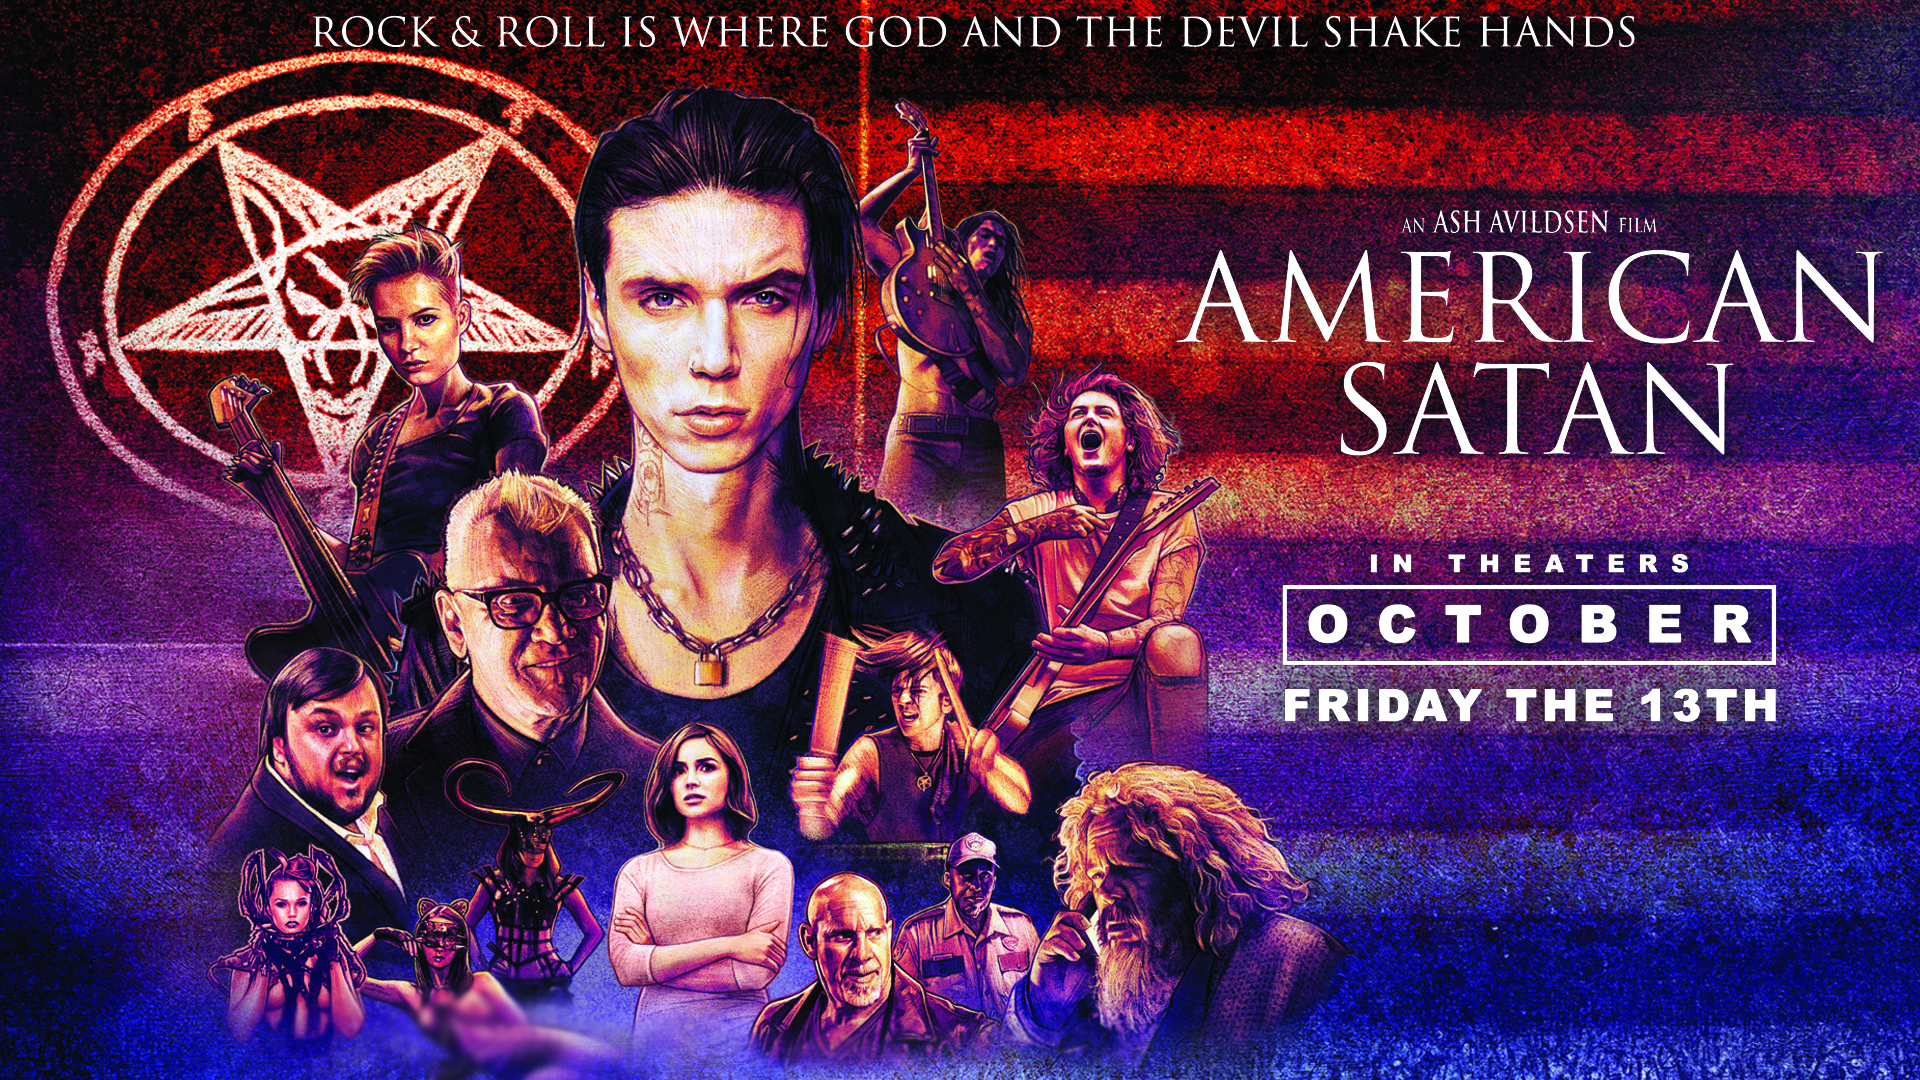 American Satan - Theatrical Trailer